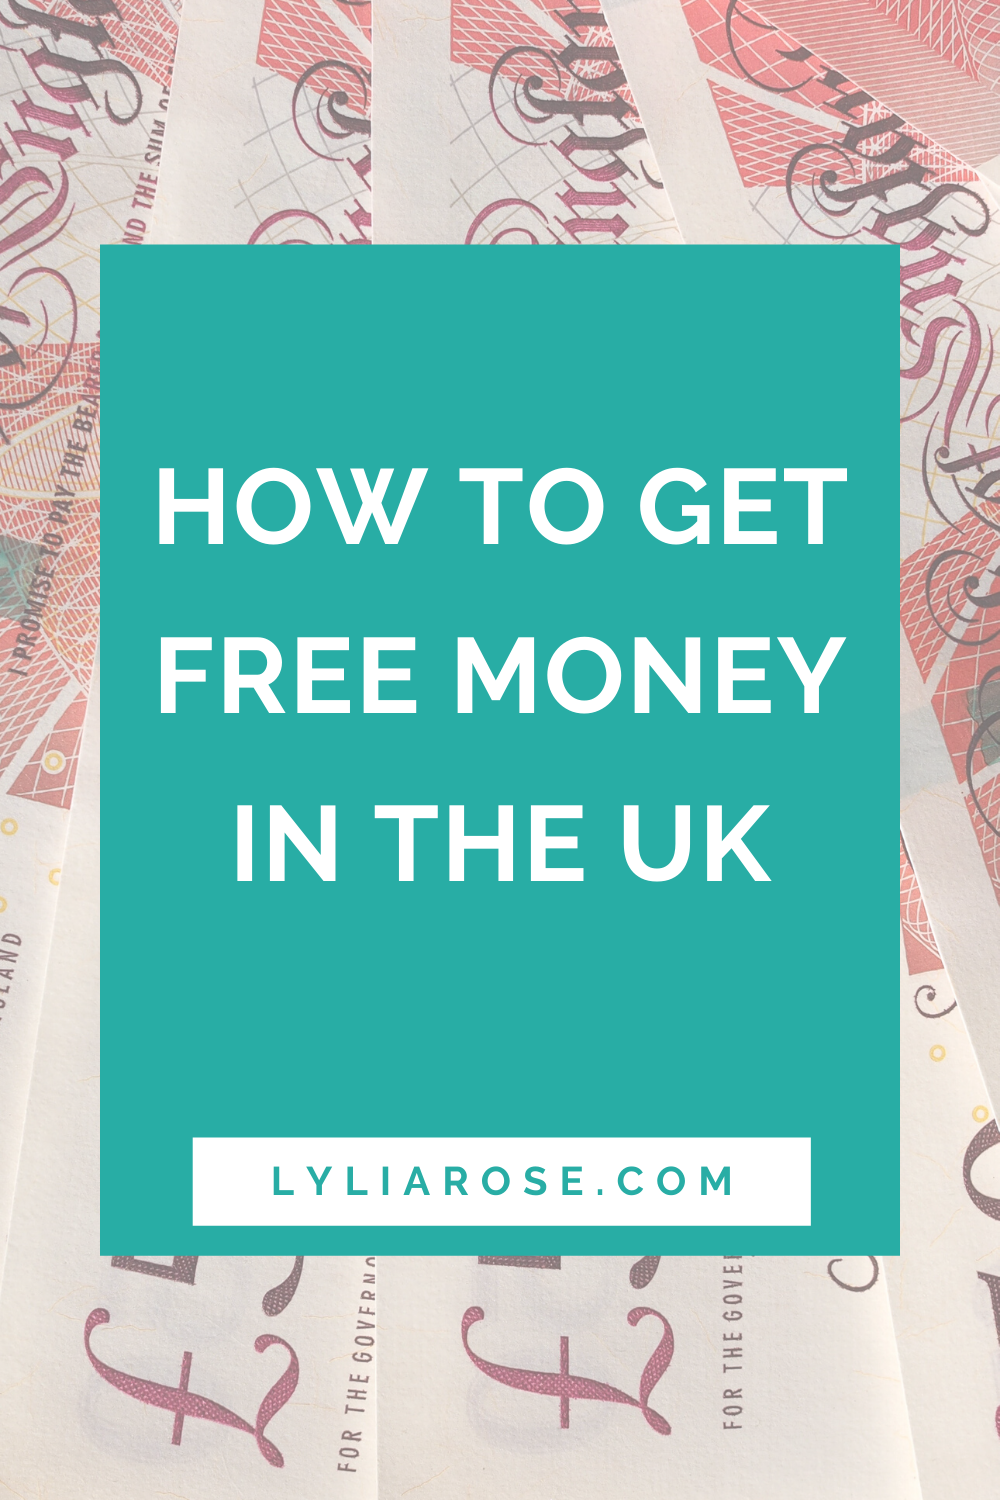 How to get free money UK (3)